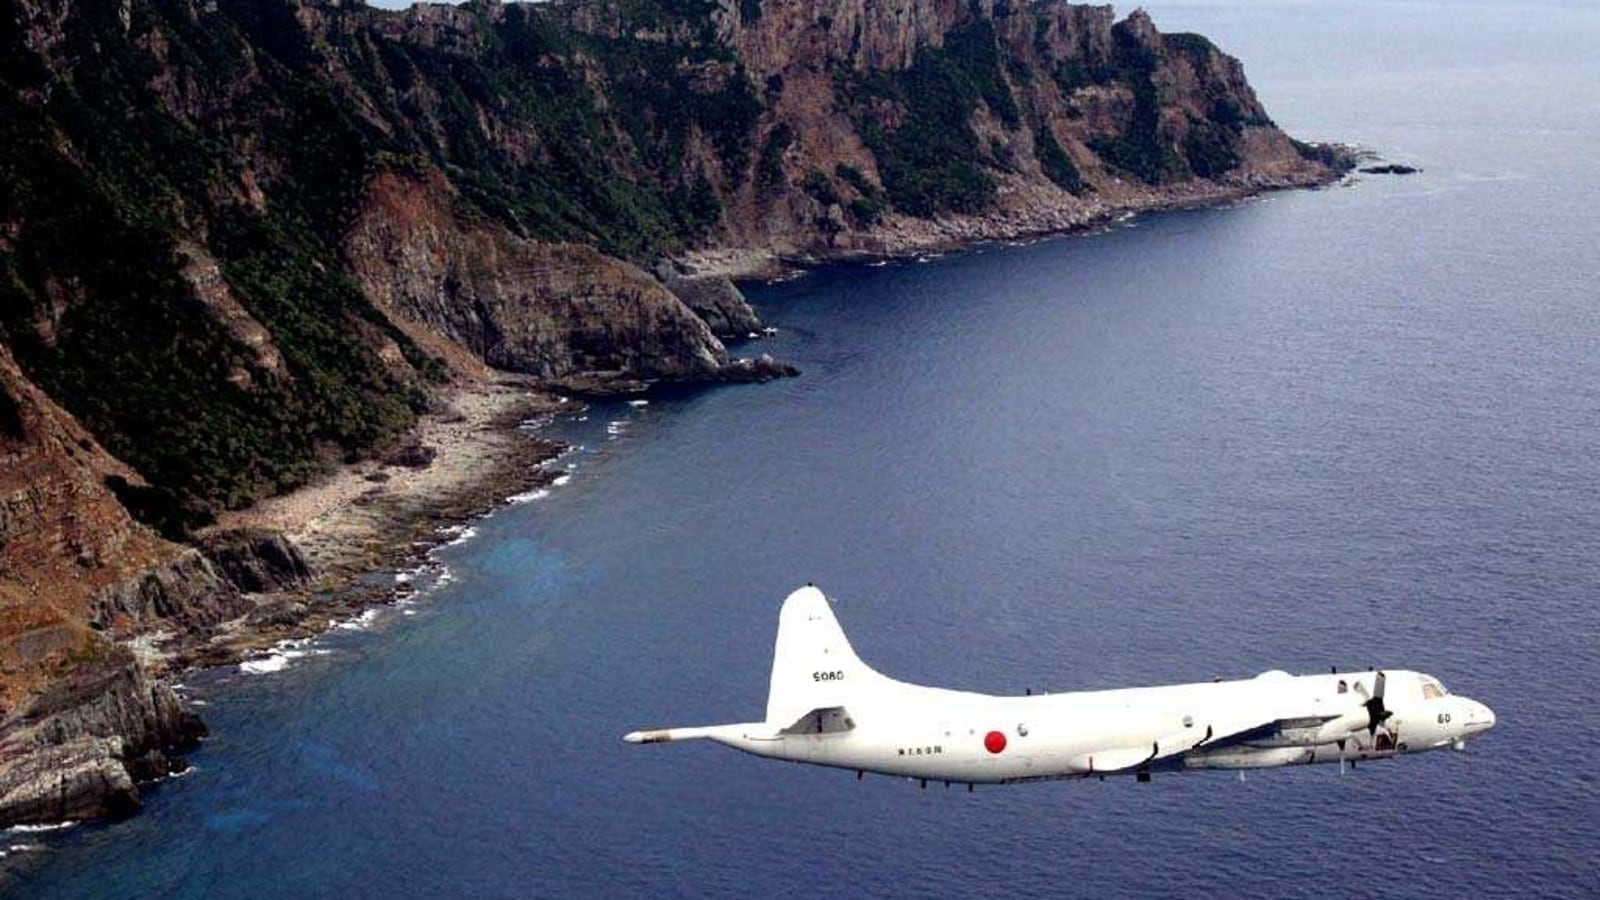 Report says Japan planning to send armed forces to East China Sea